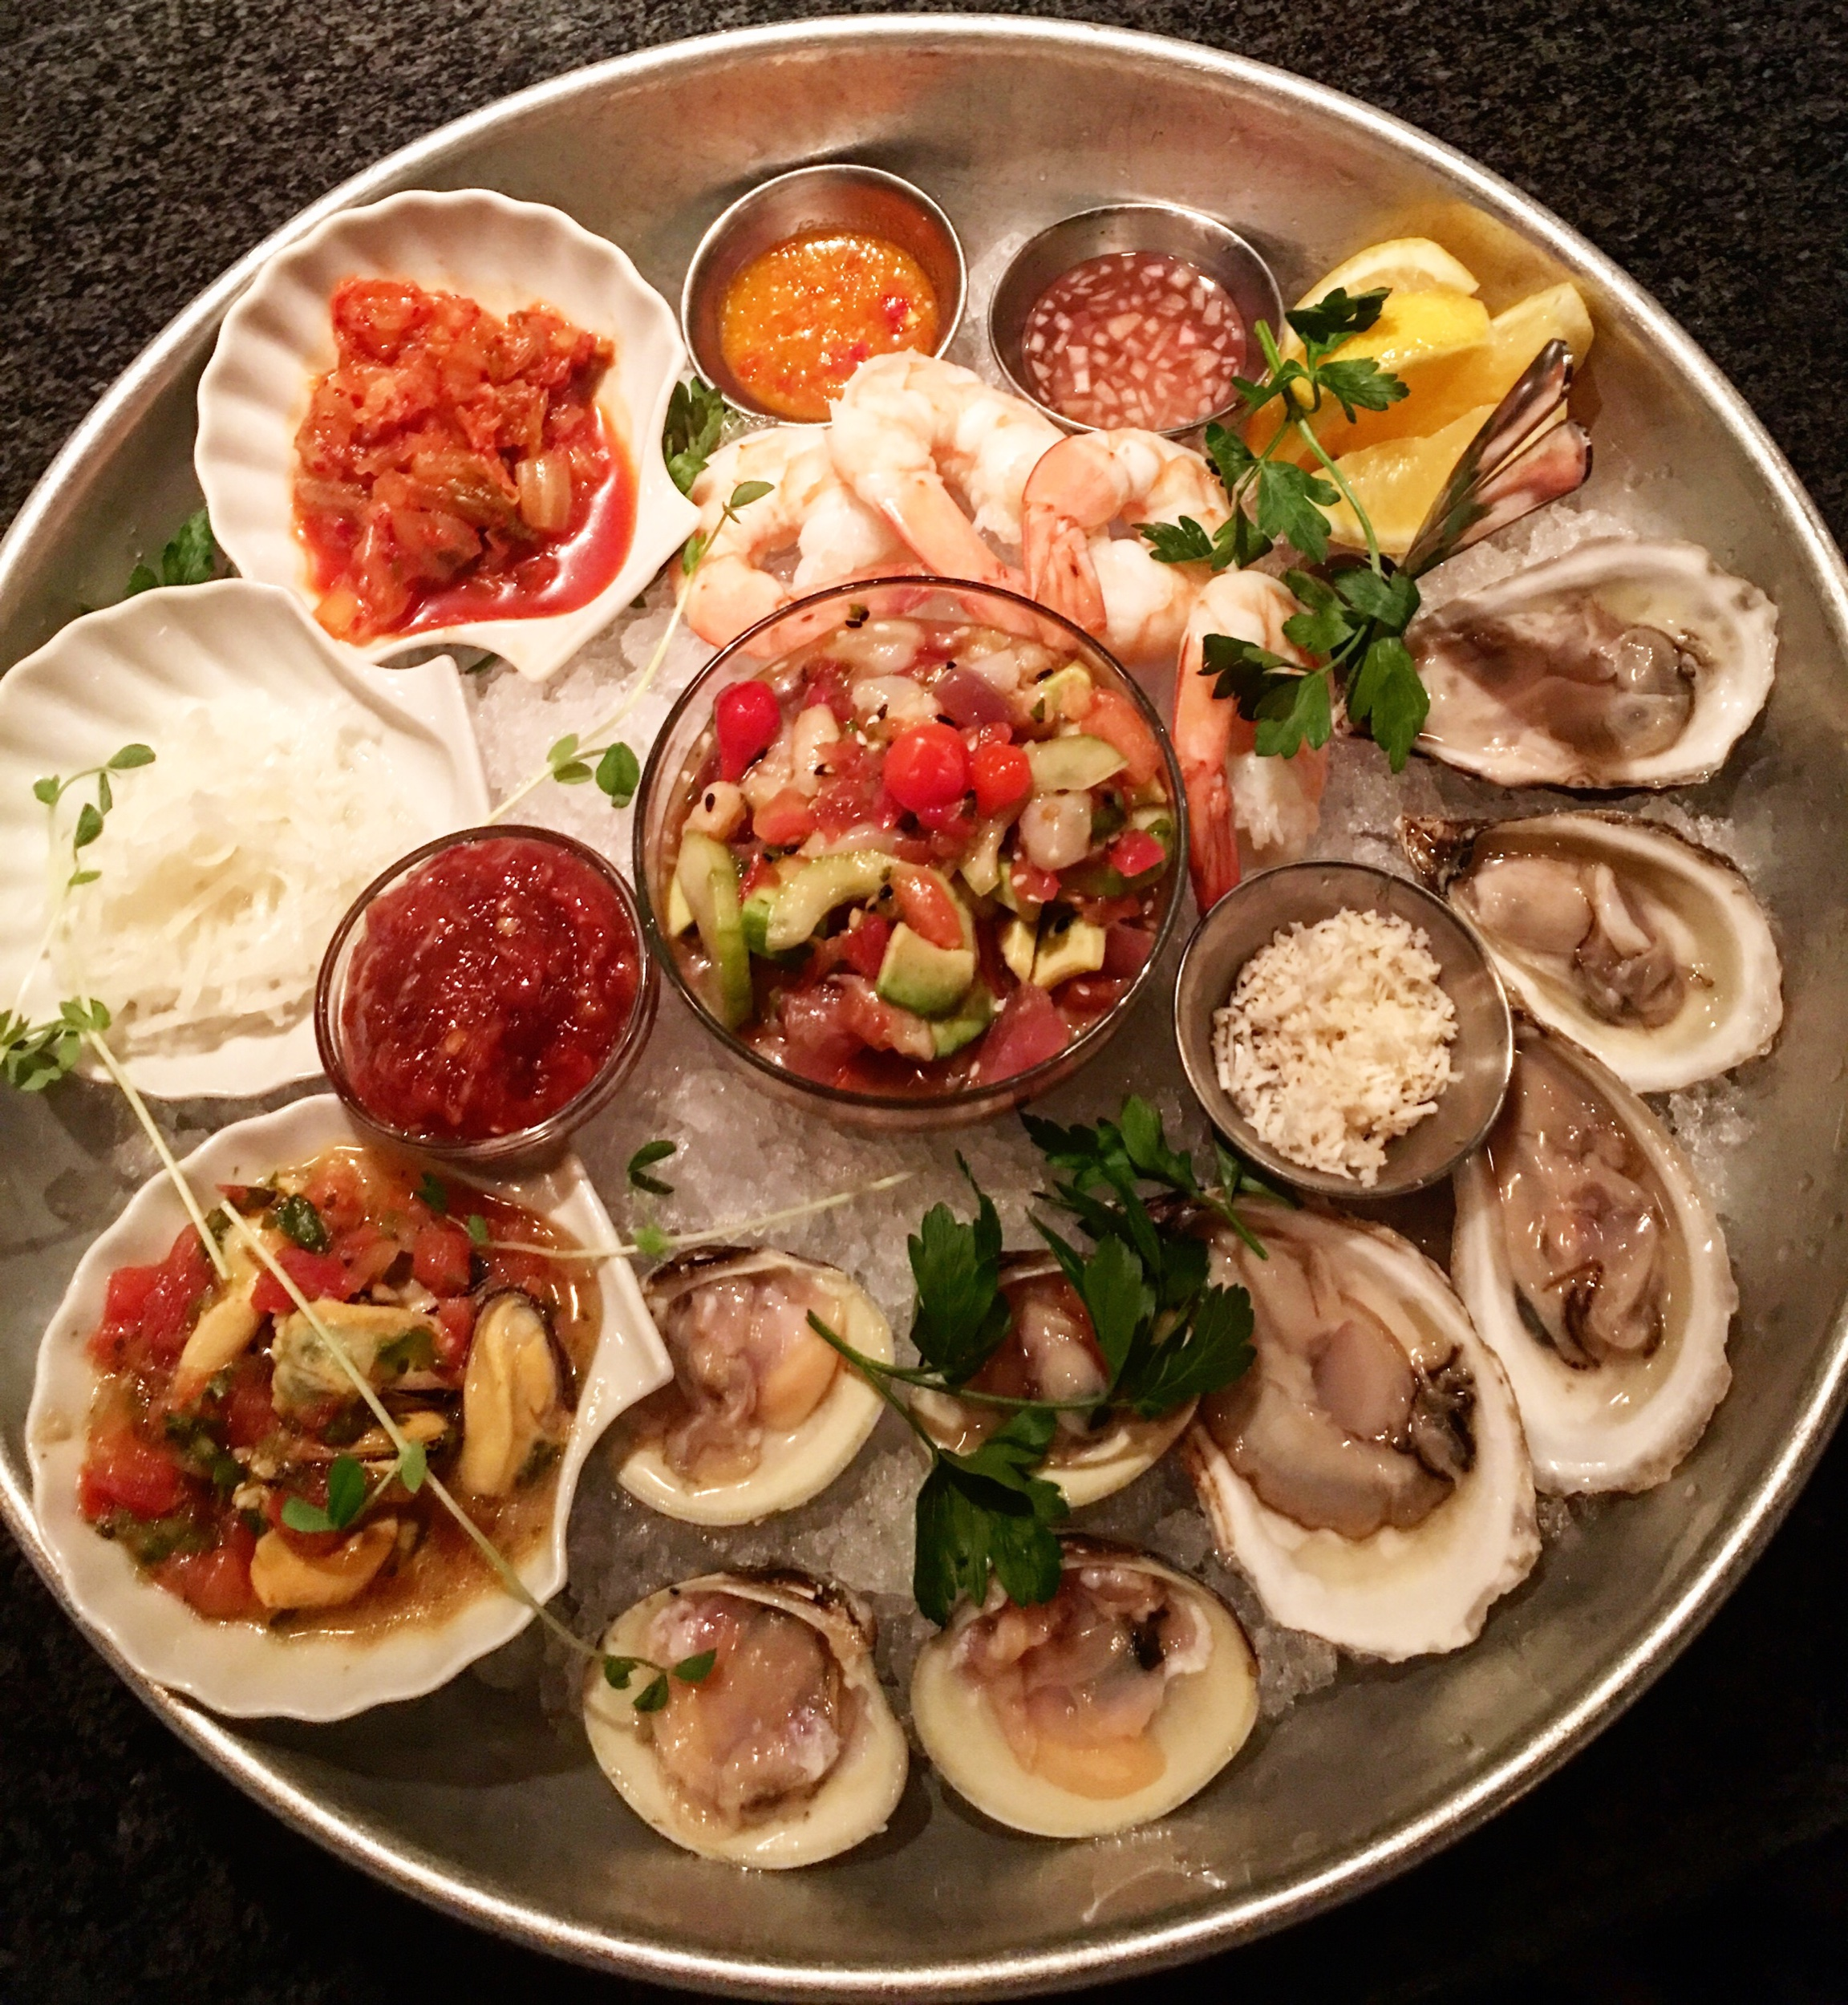 Petit Plateau - iced seafood platter featuring oysters, clams, marinated mussels, shrimp, seafood poke salad, pickled daikon & kimchi.